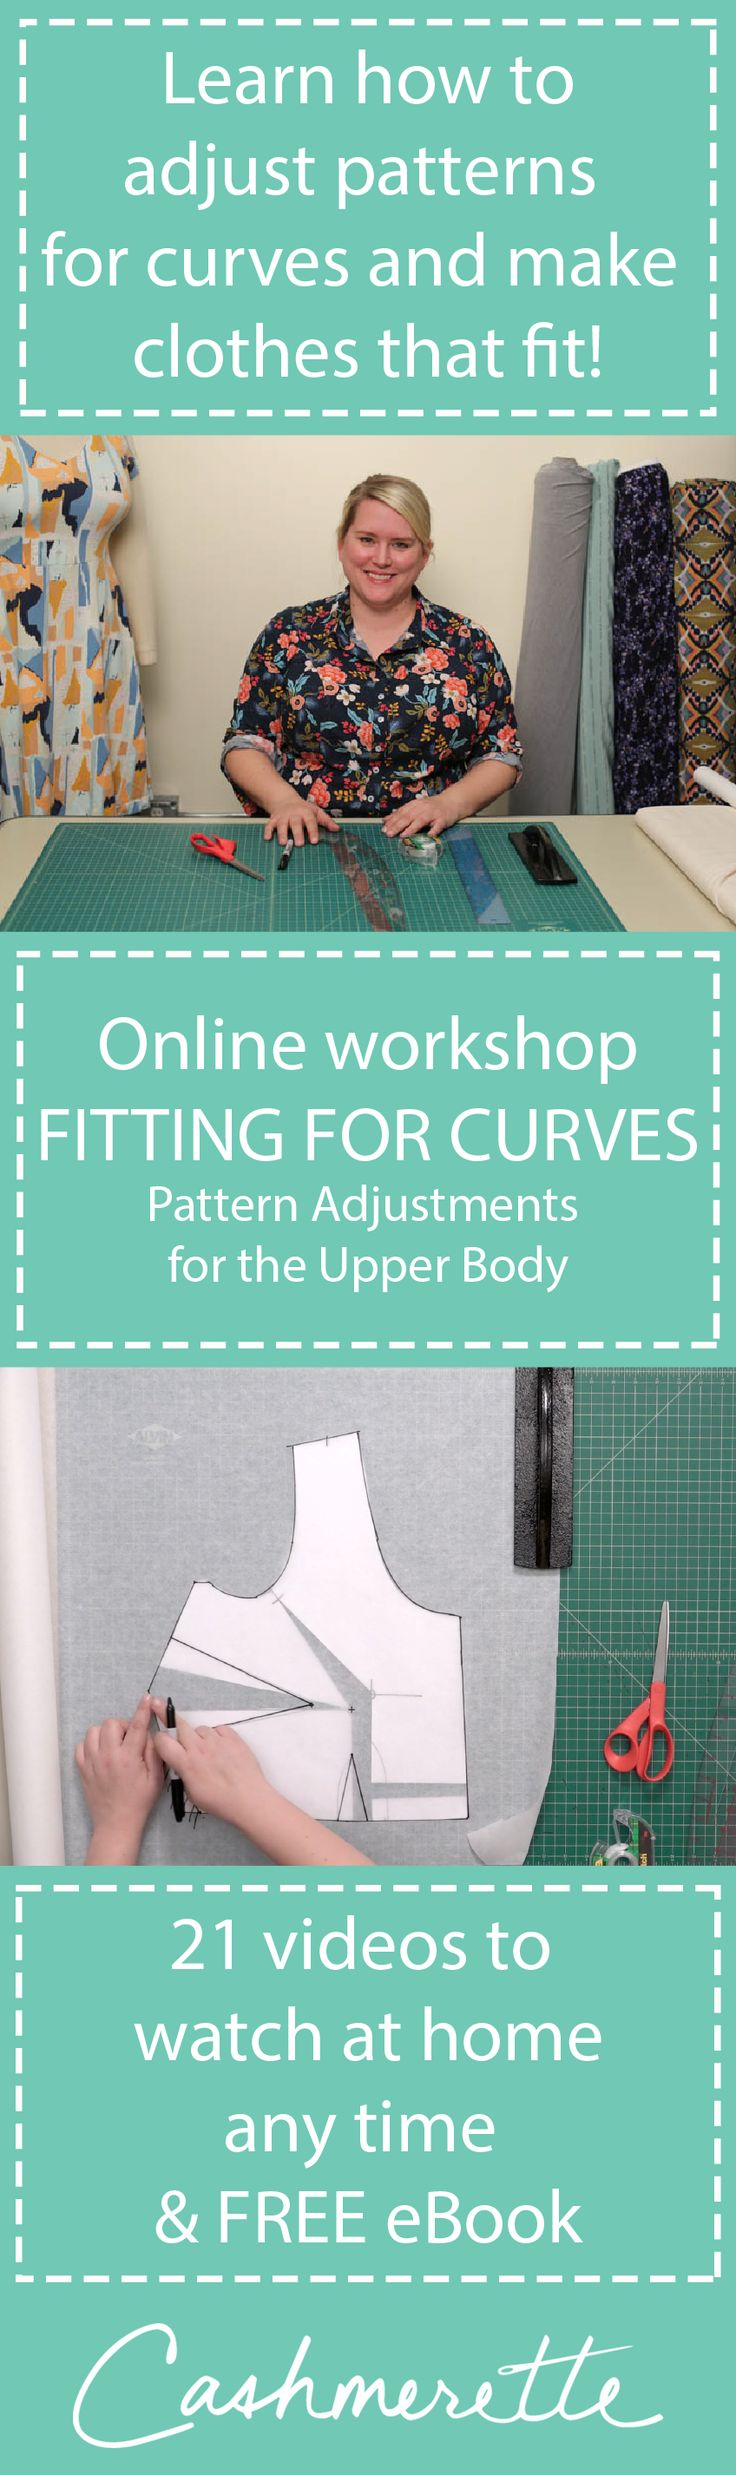 Fitting for Curves: a new online workshop that teaches you how to alter sewing patterns for curves